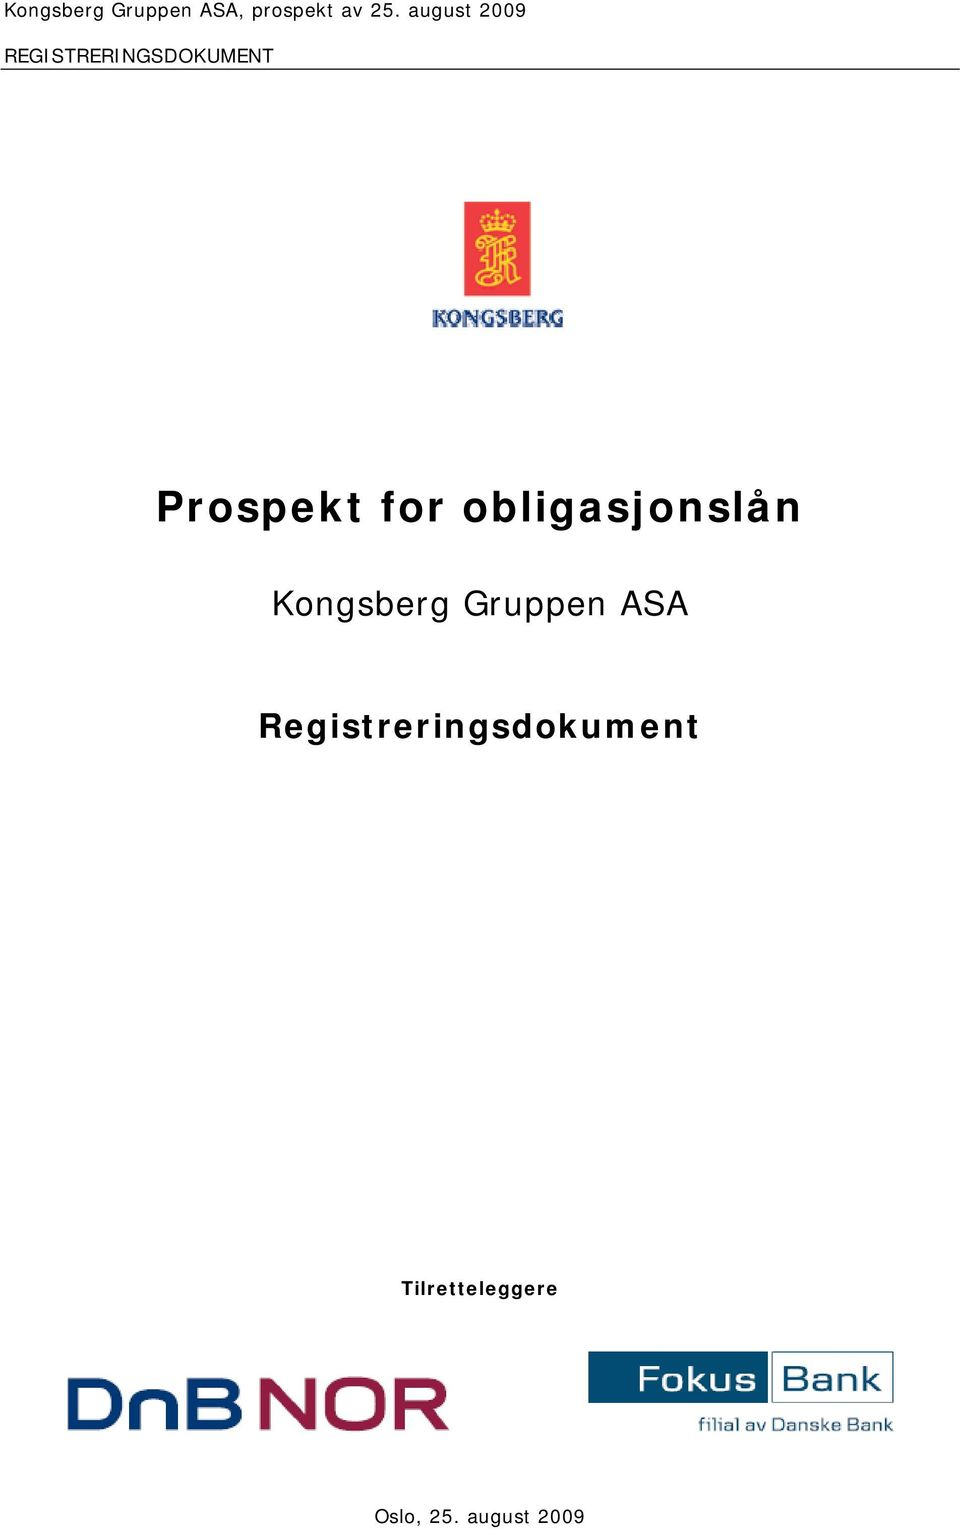 Registreringsdokument